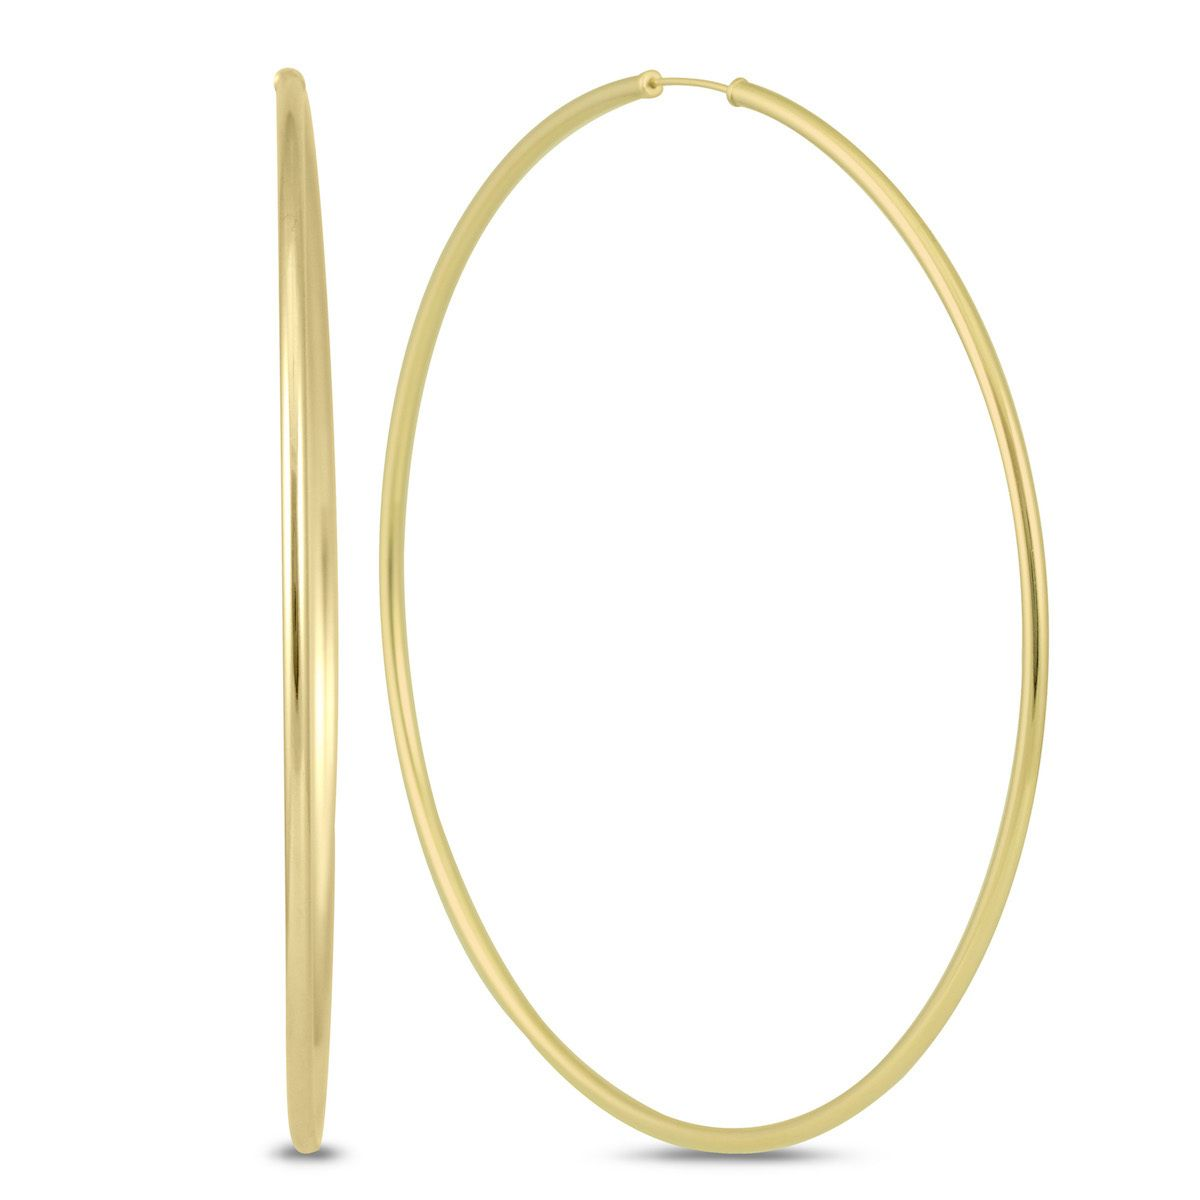 Marquee Jewels 14k Gold 80millimeter Endless Hoop Earrings